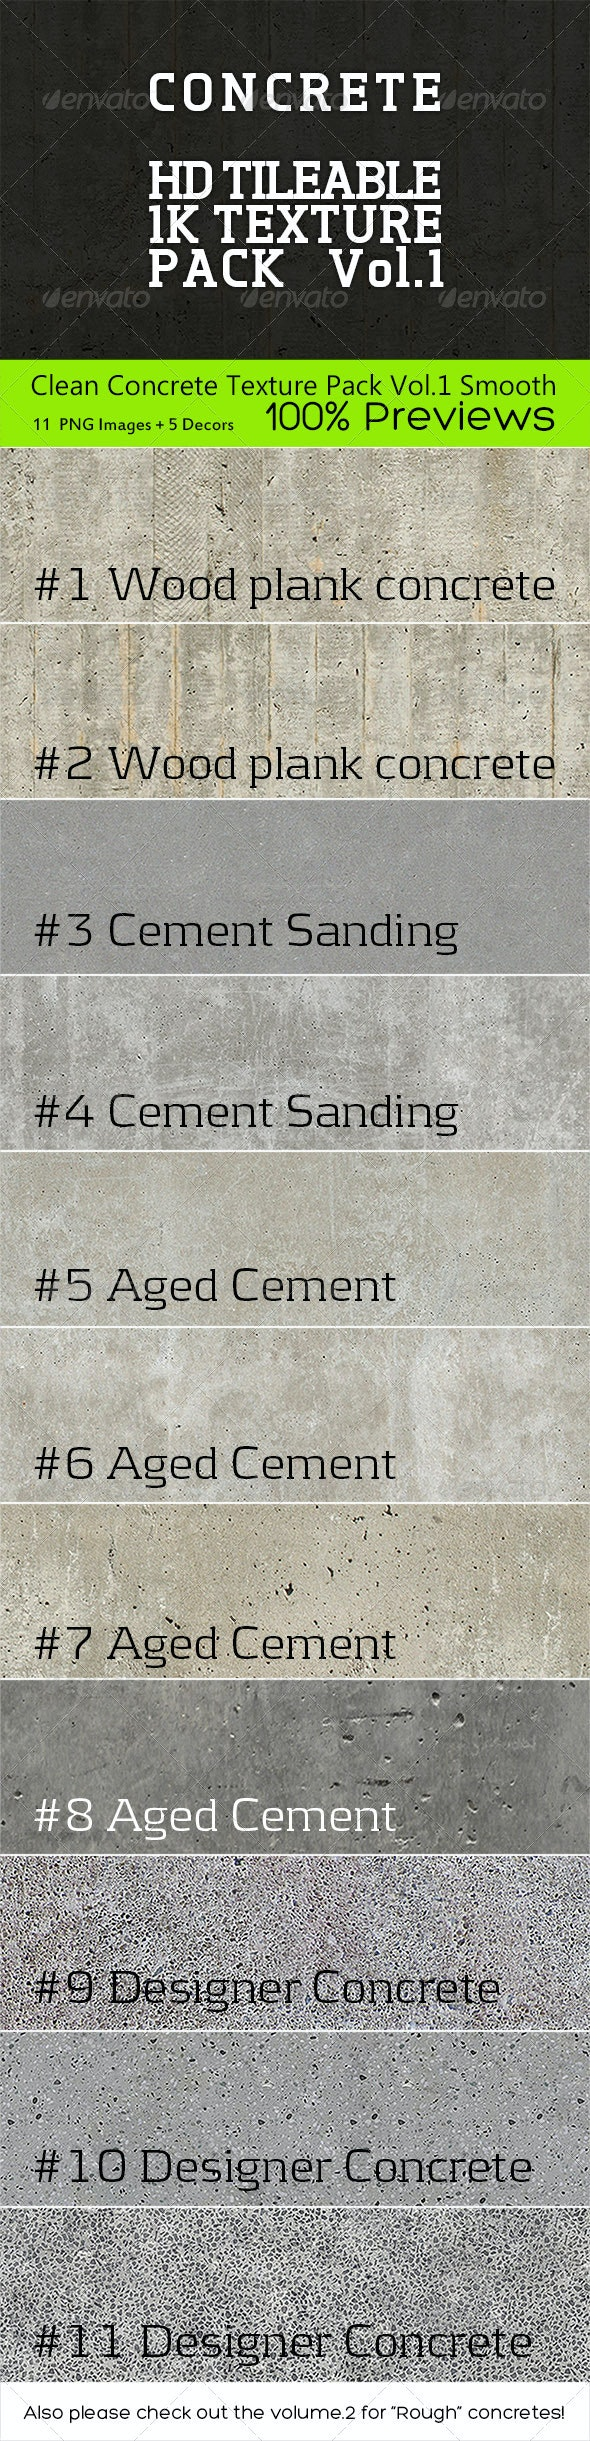 Clean Concrete Texture Pack Vol.1 Smooth - Concrete Textures